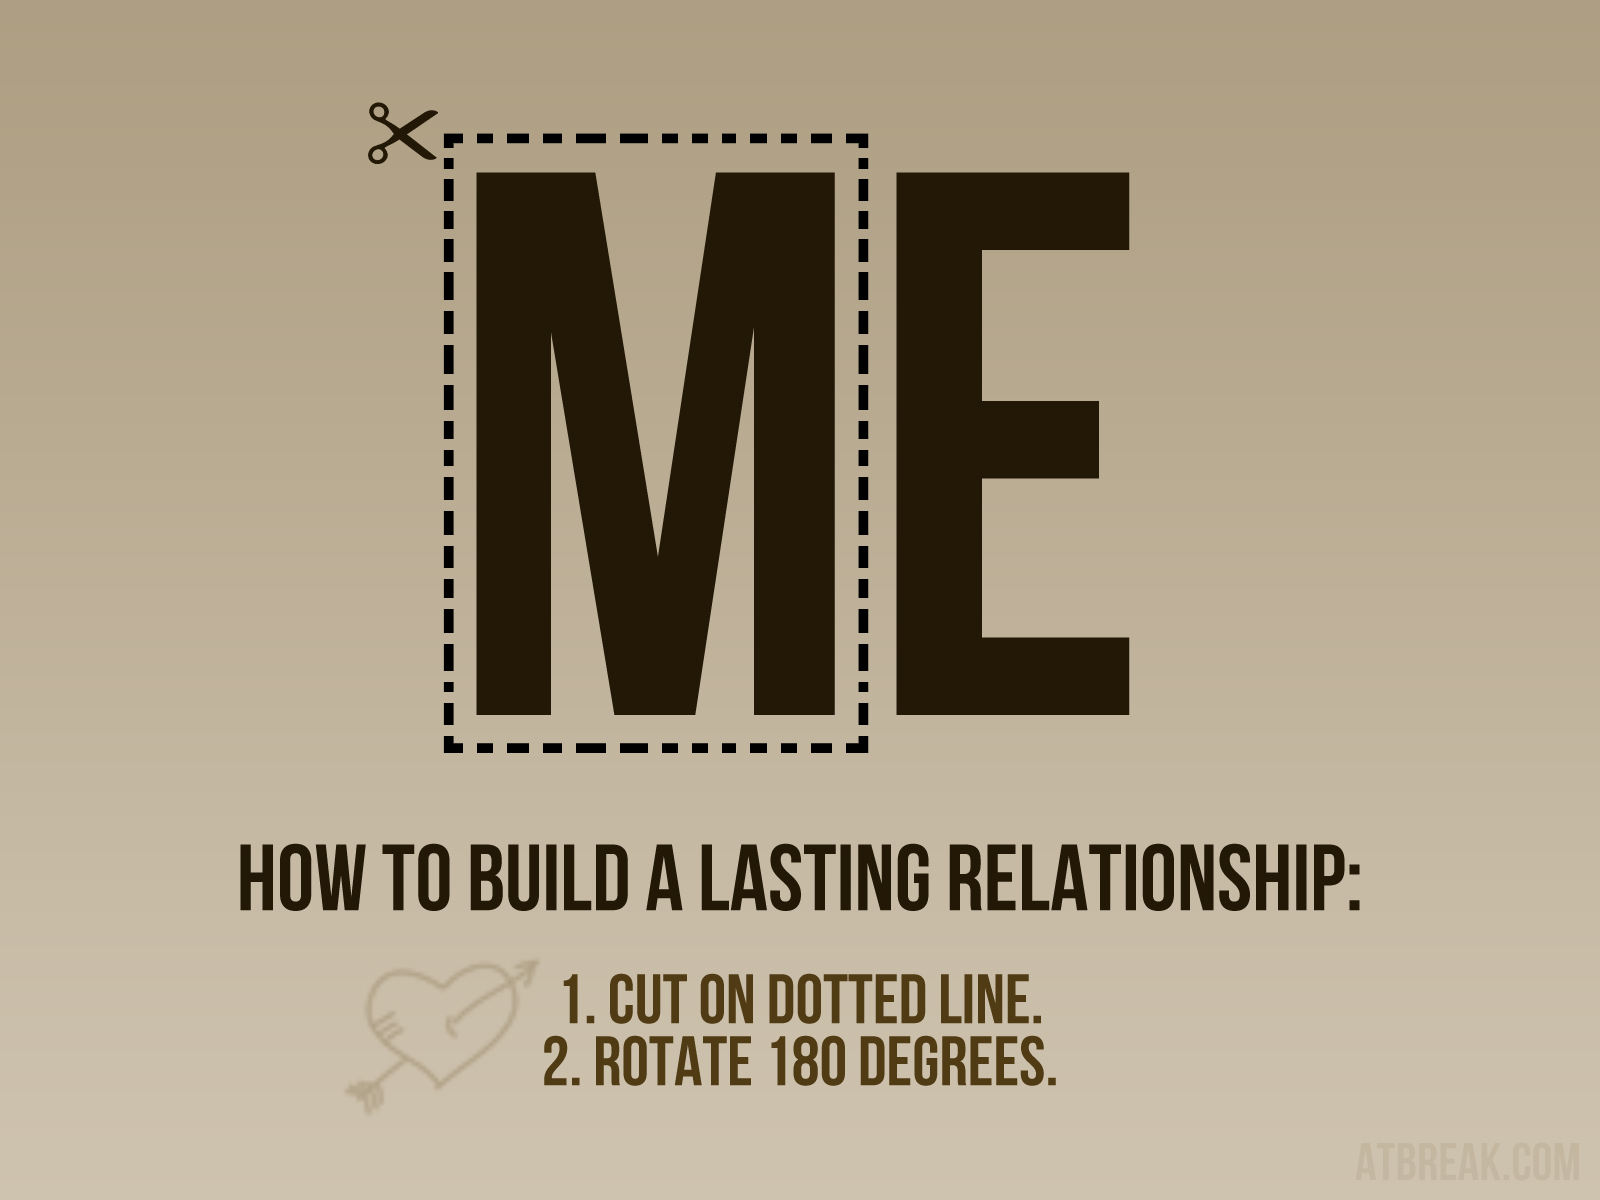 How to make a lasting relationship